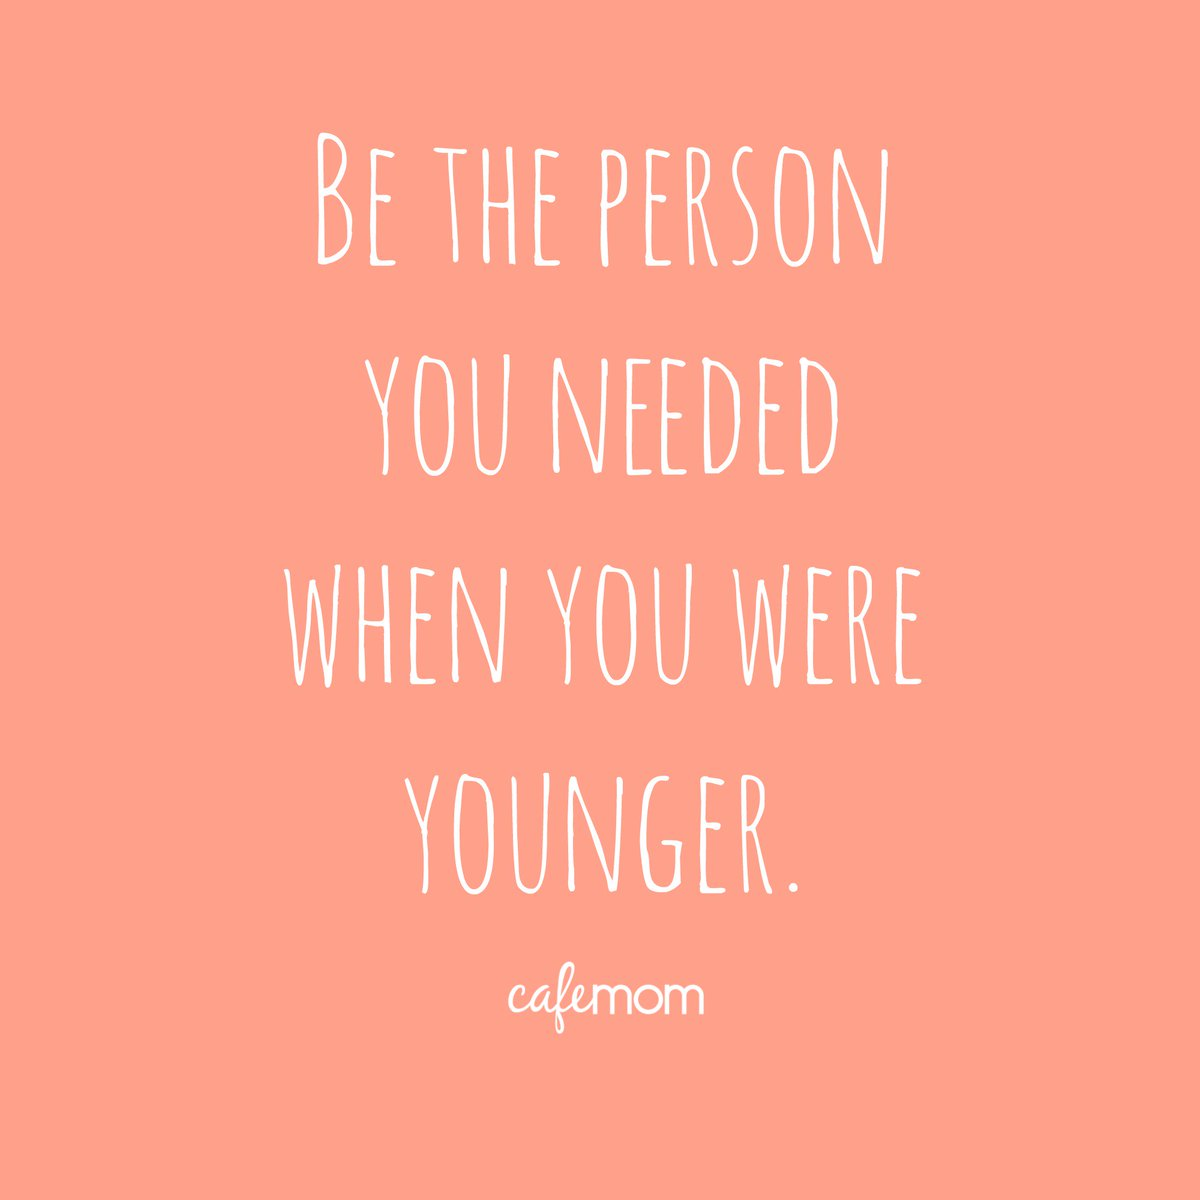 Be the person you needed when you were younger. #WednesdayWisdom https://t.co/q1paQvOJw8